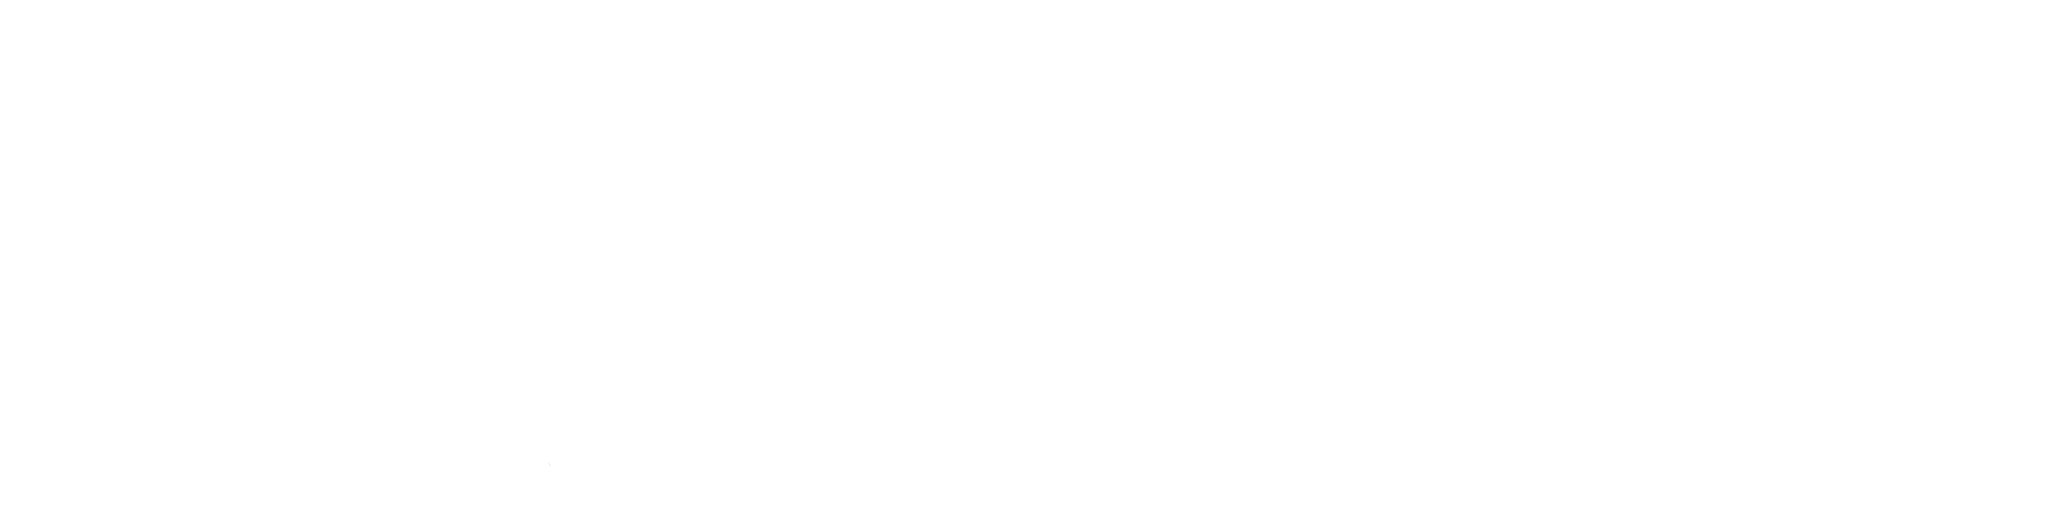 Women's Defense Network